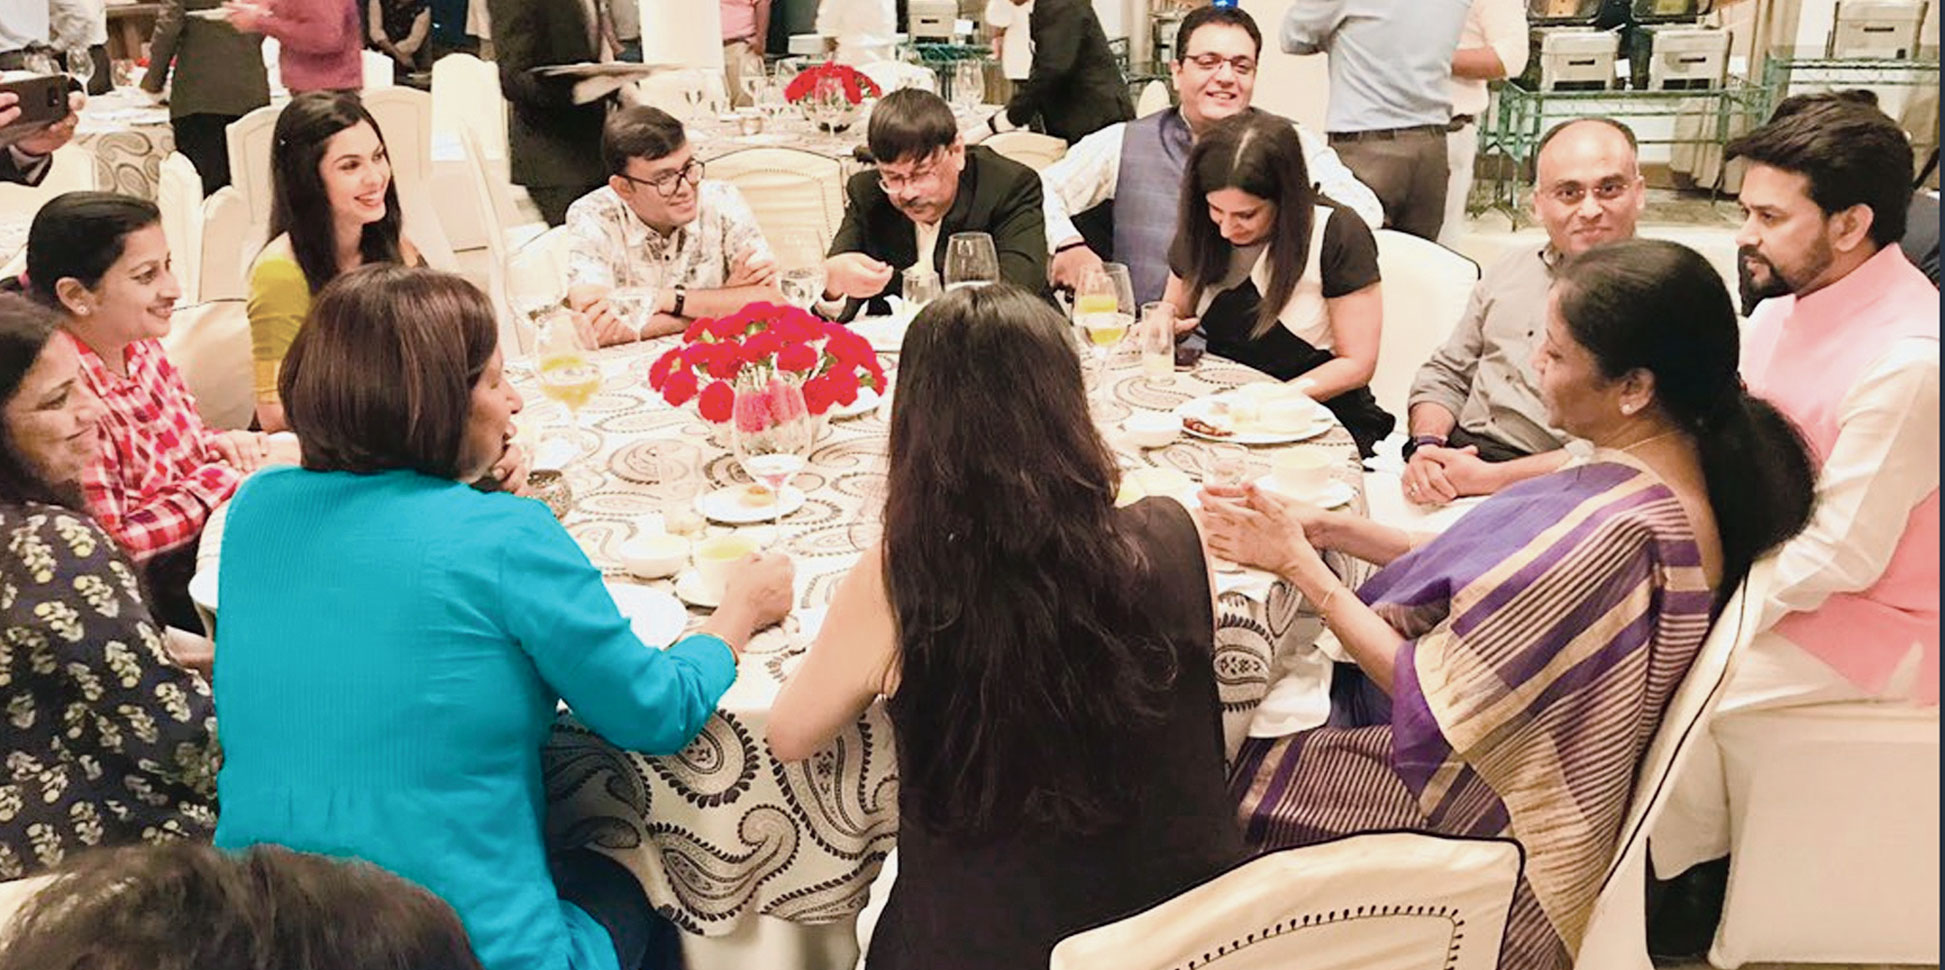 A picture tweeted by junior finance minister Anurag Thakur on July 12 shows him and Nirmala Sitharaman interacting with some of those who attended the dinner